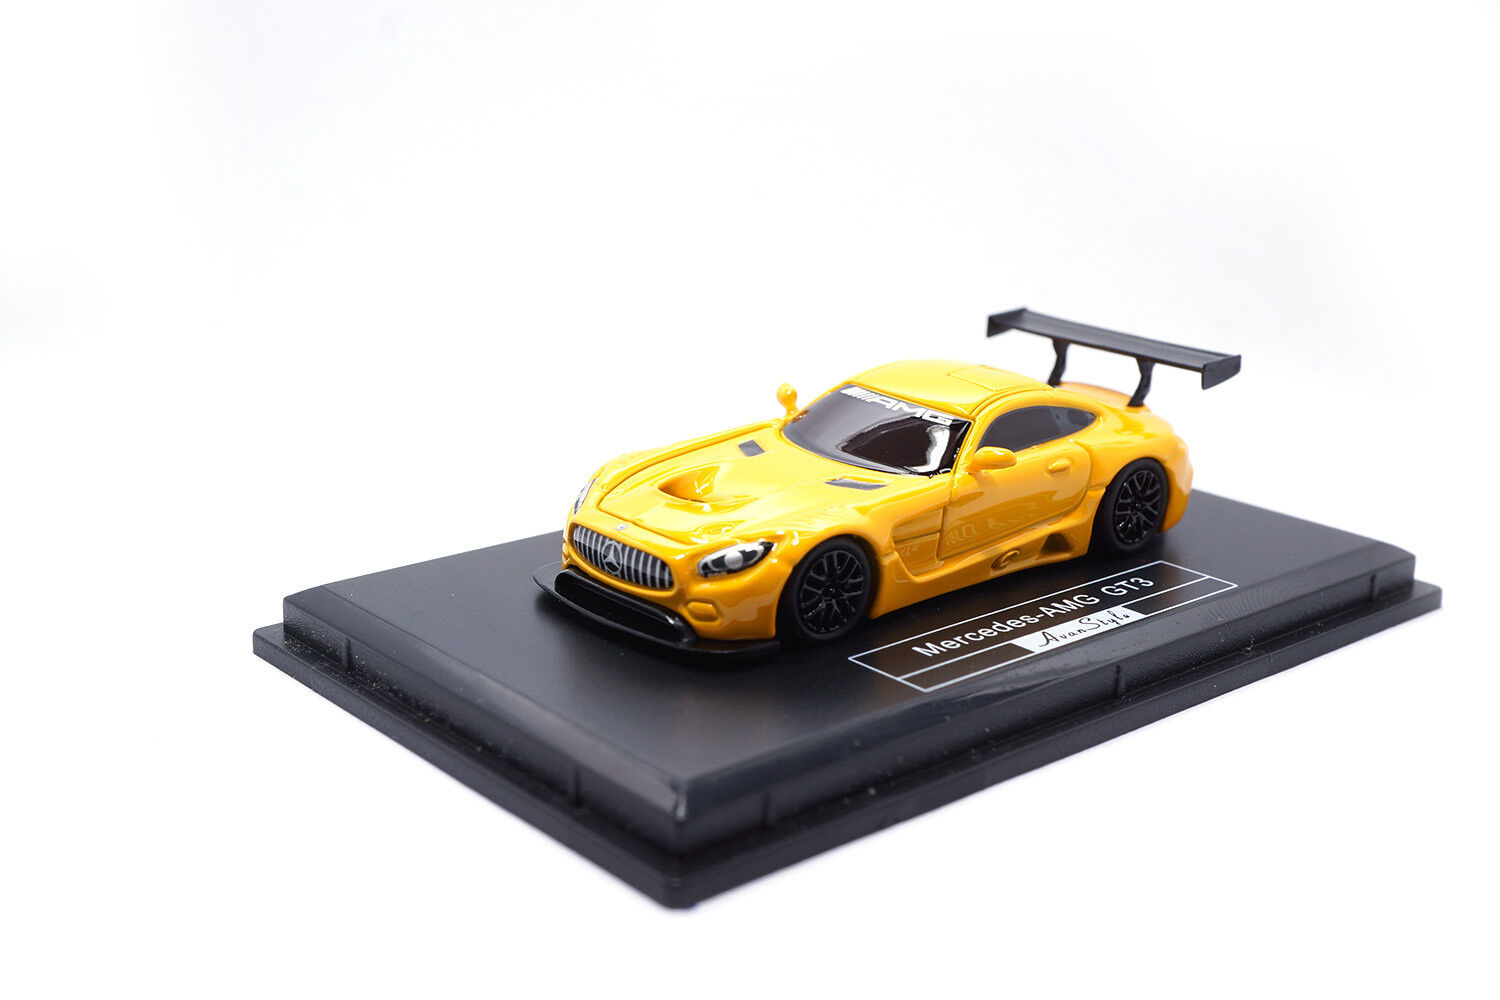 AS017-08 - FrontiArt Mercedes-AMG GT3 - yellow - 1 87